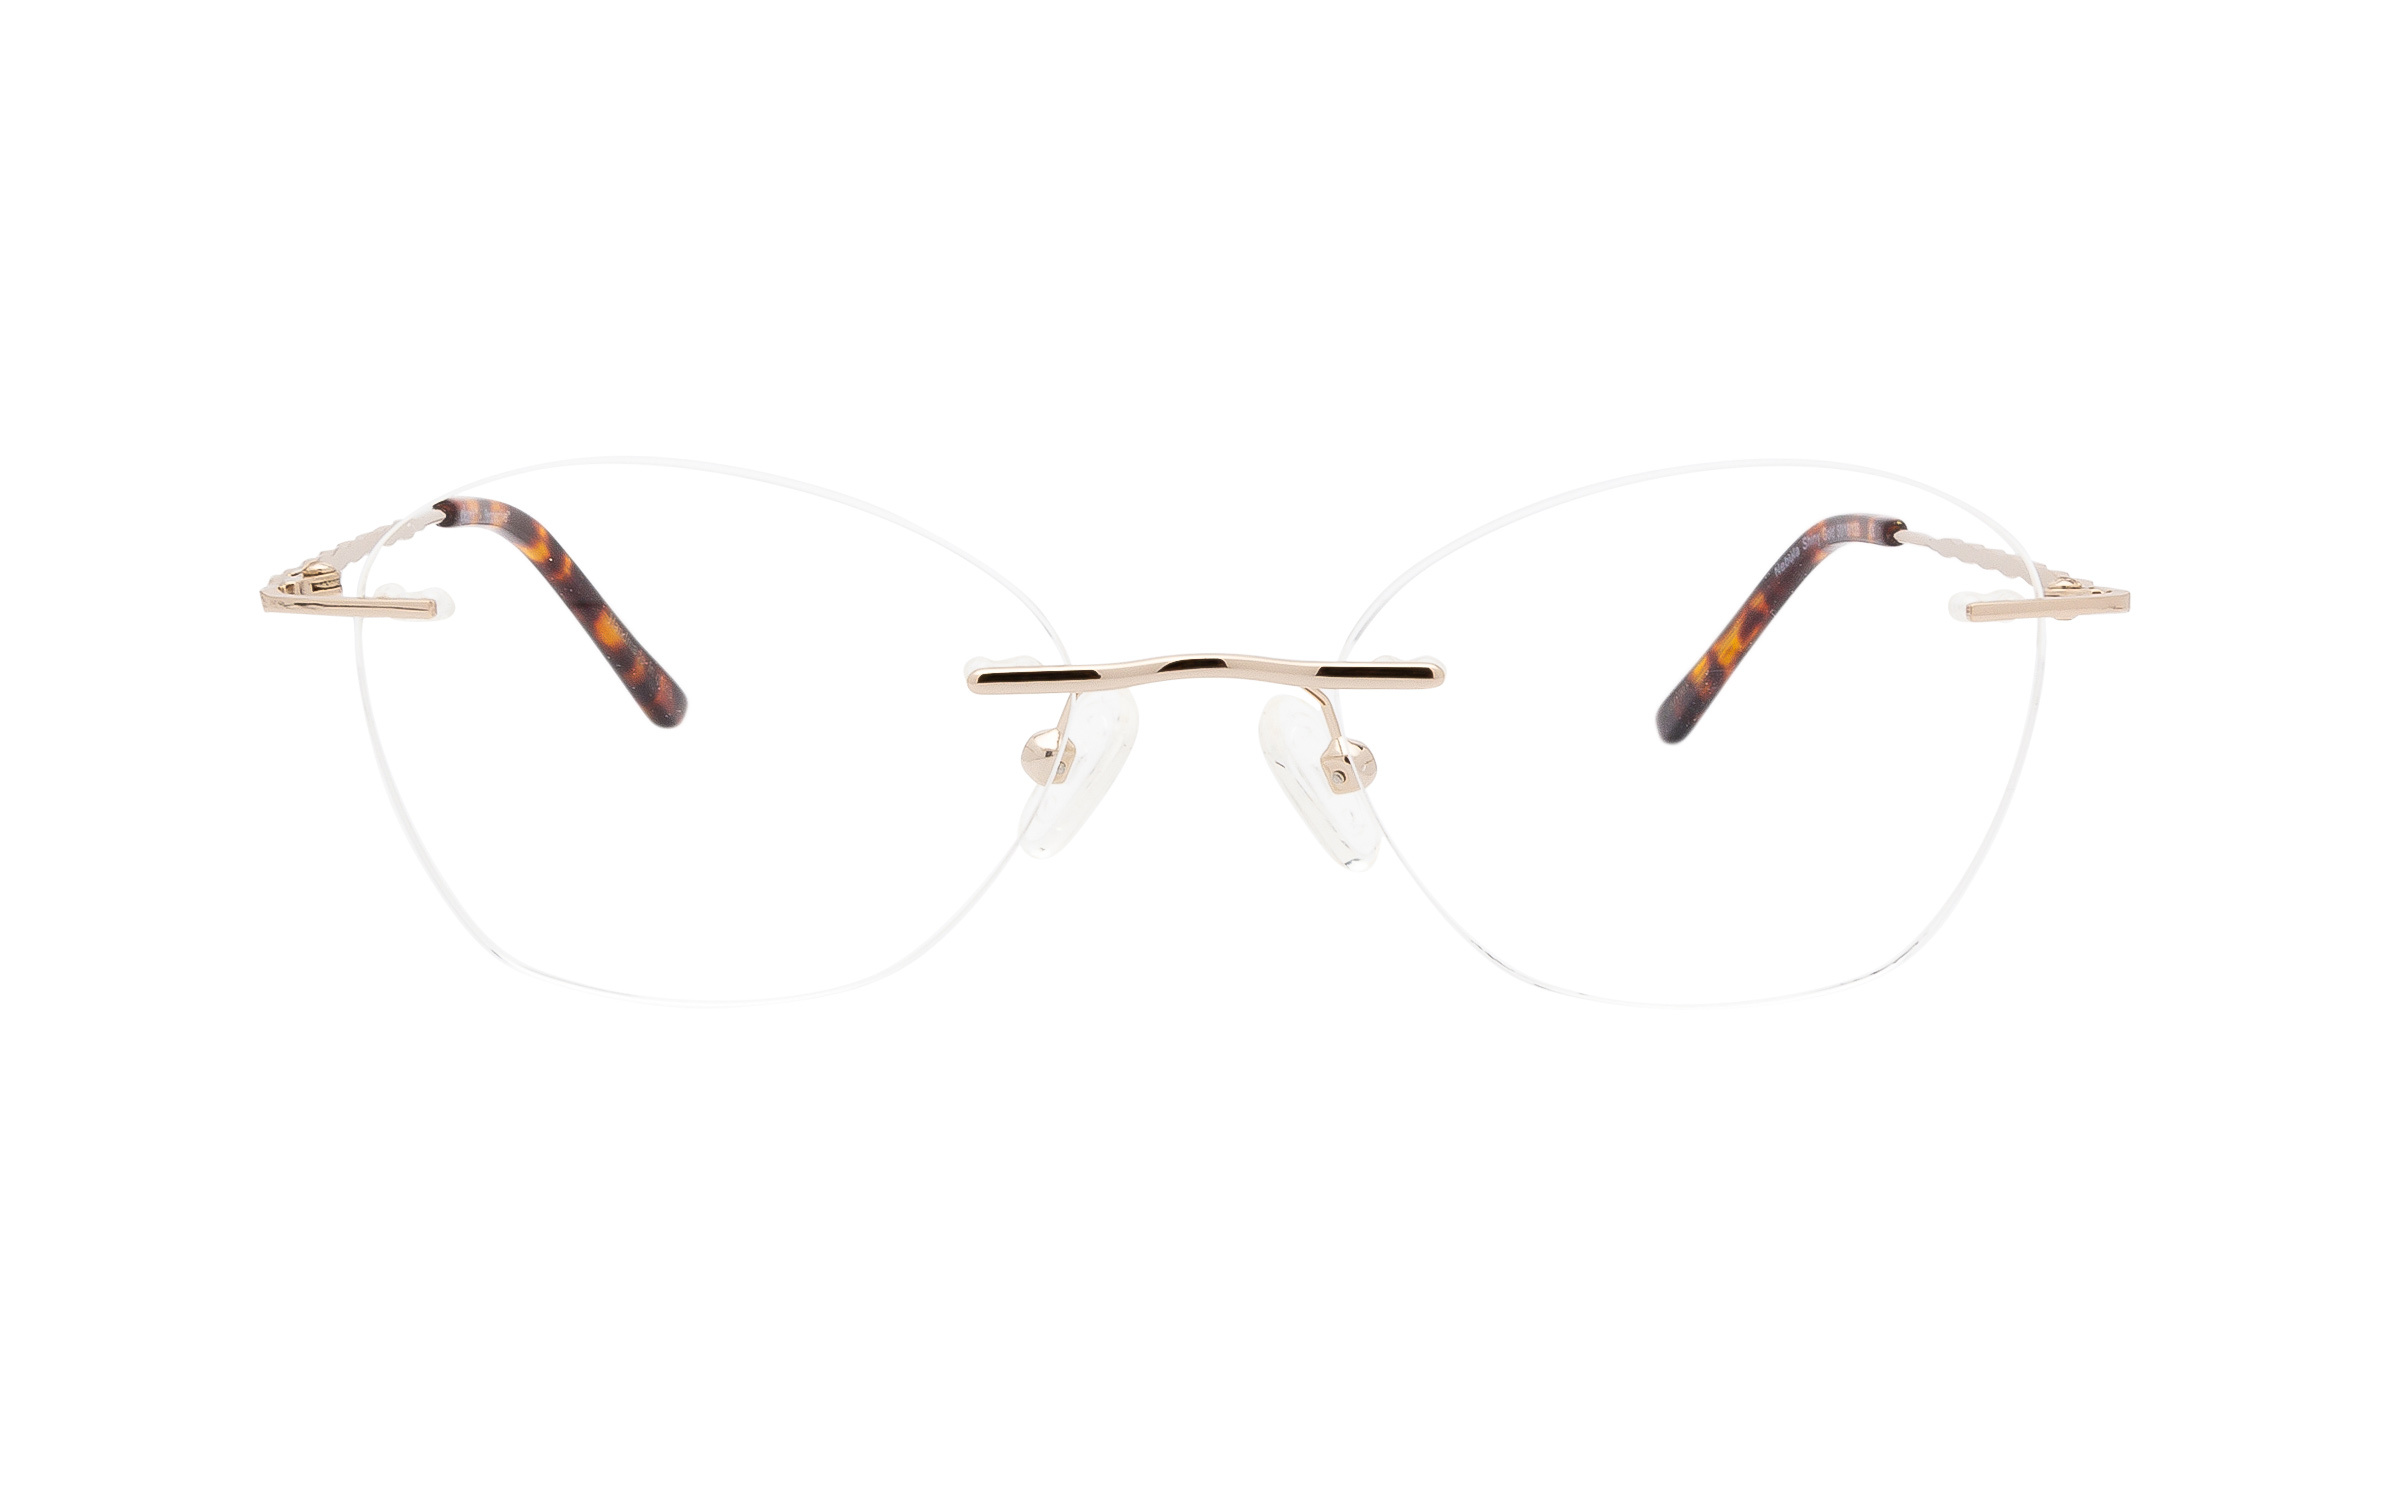 http://www.coastal.com/ - Perspective Nebula PER018 C01 (50) Eyeglasses and Frame in Shiny Gold | Acetate/Metal – Online Coastal